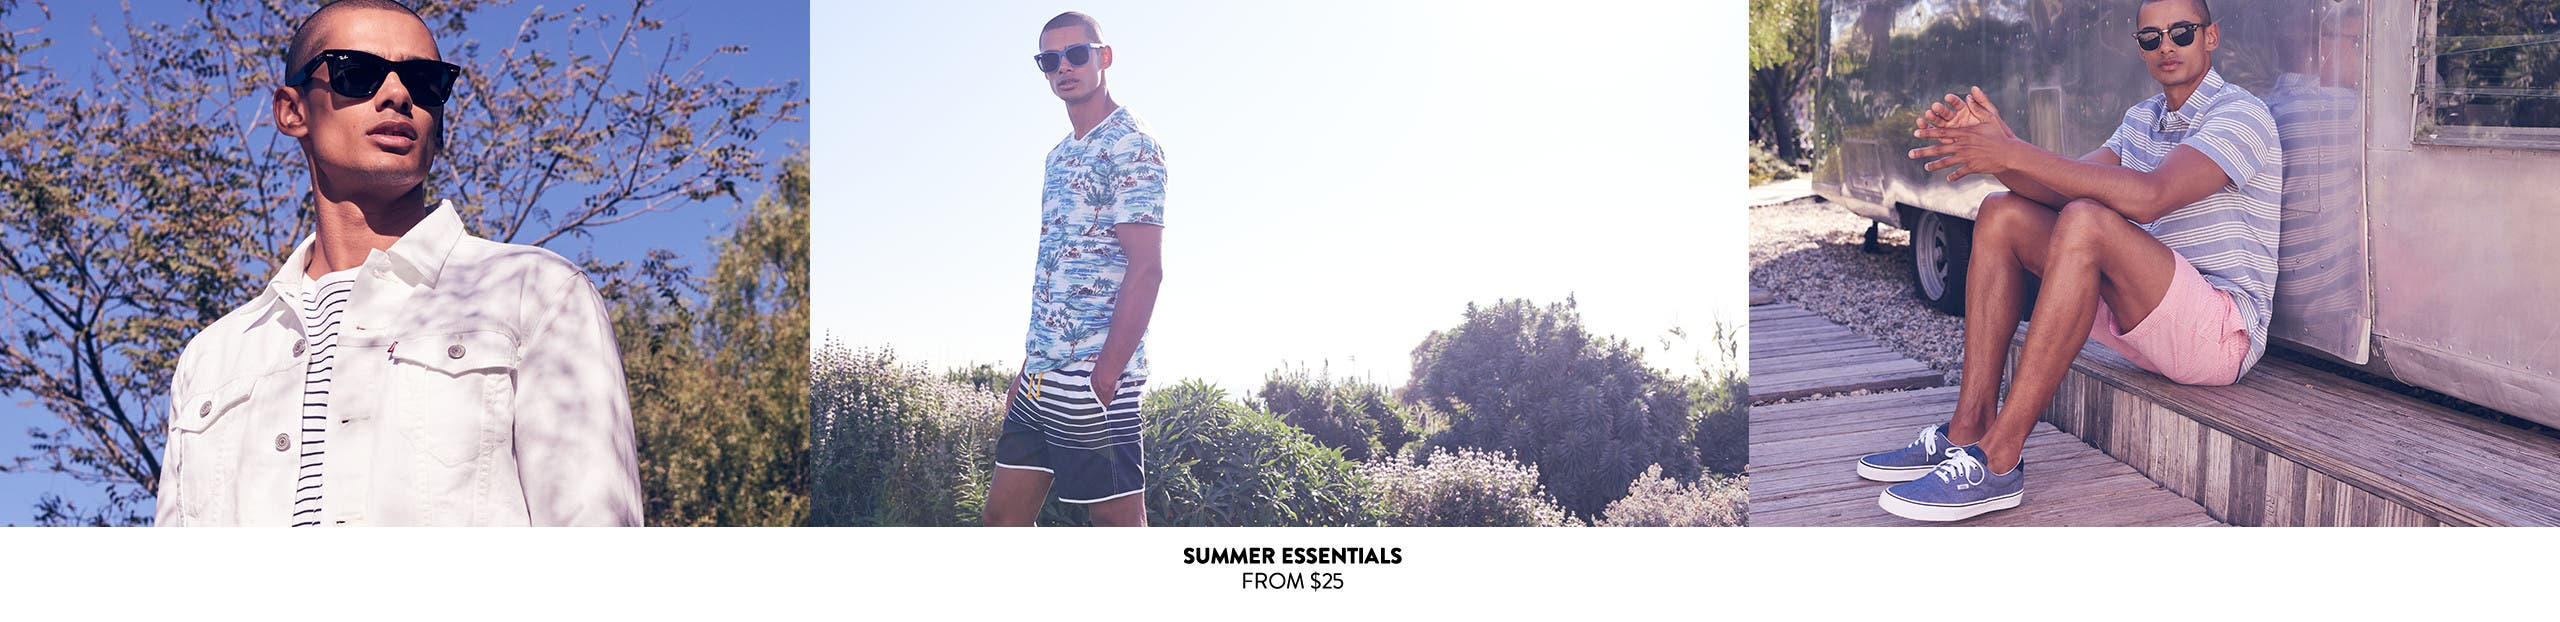 Summer essentials from $25